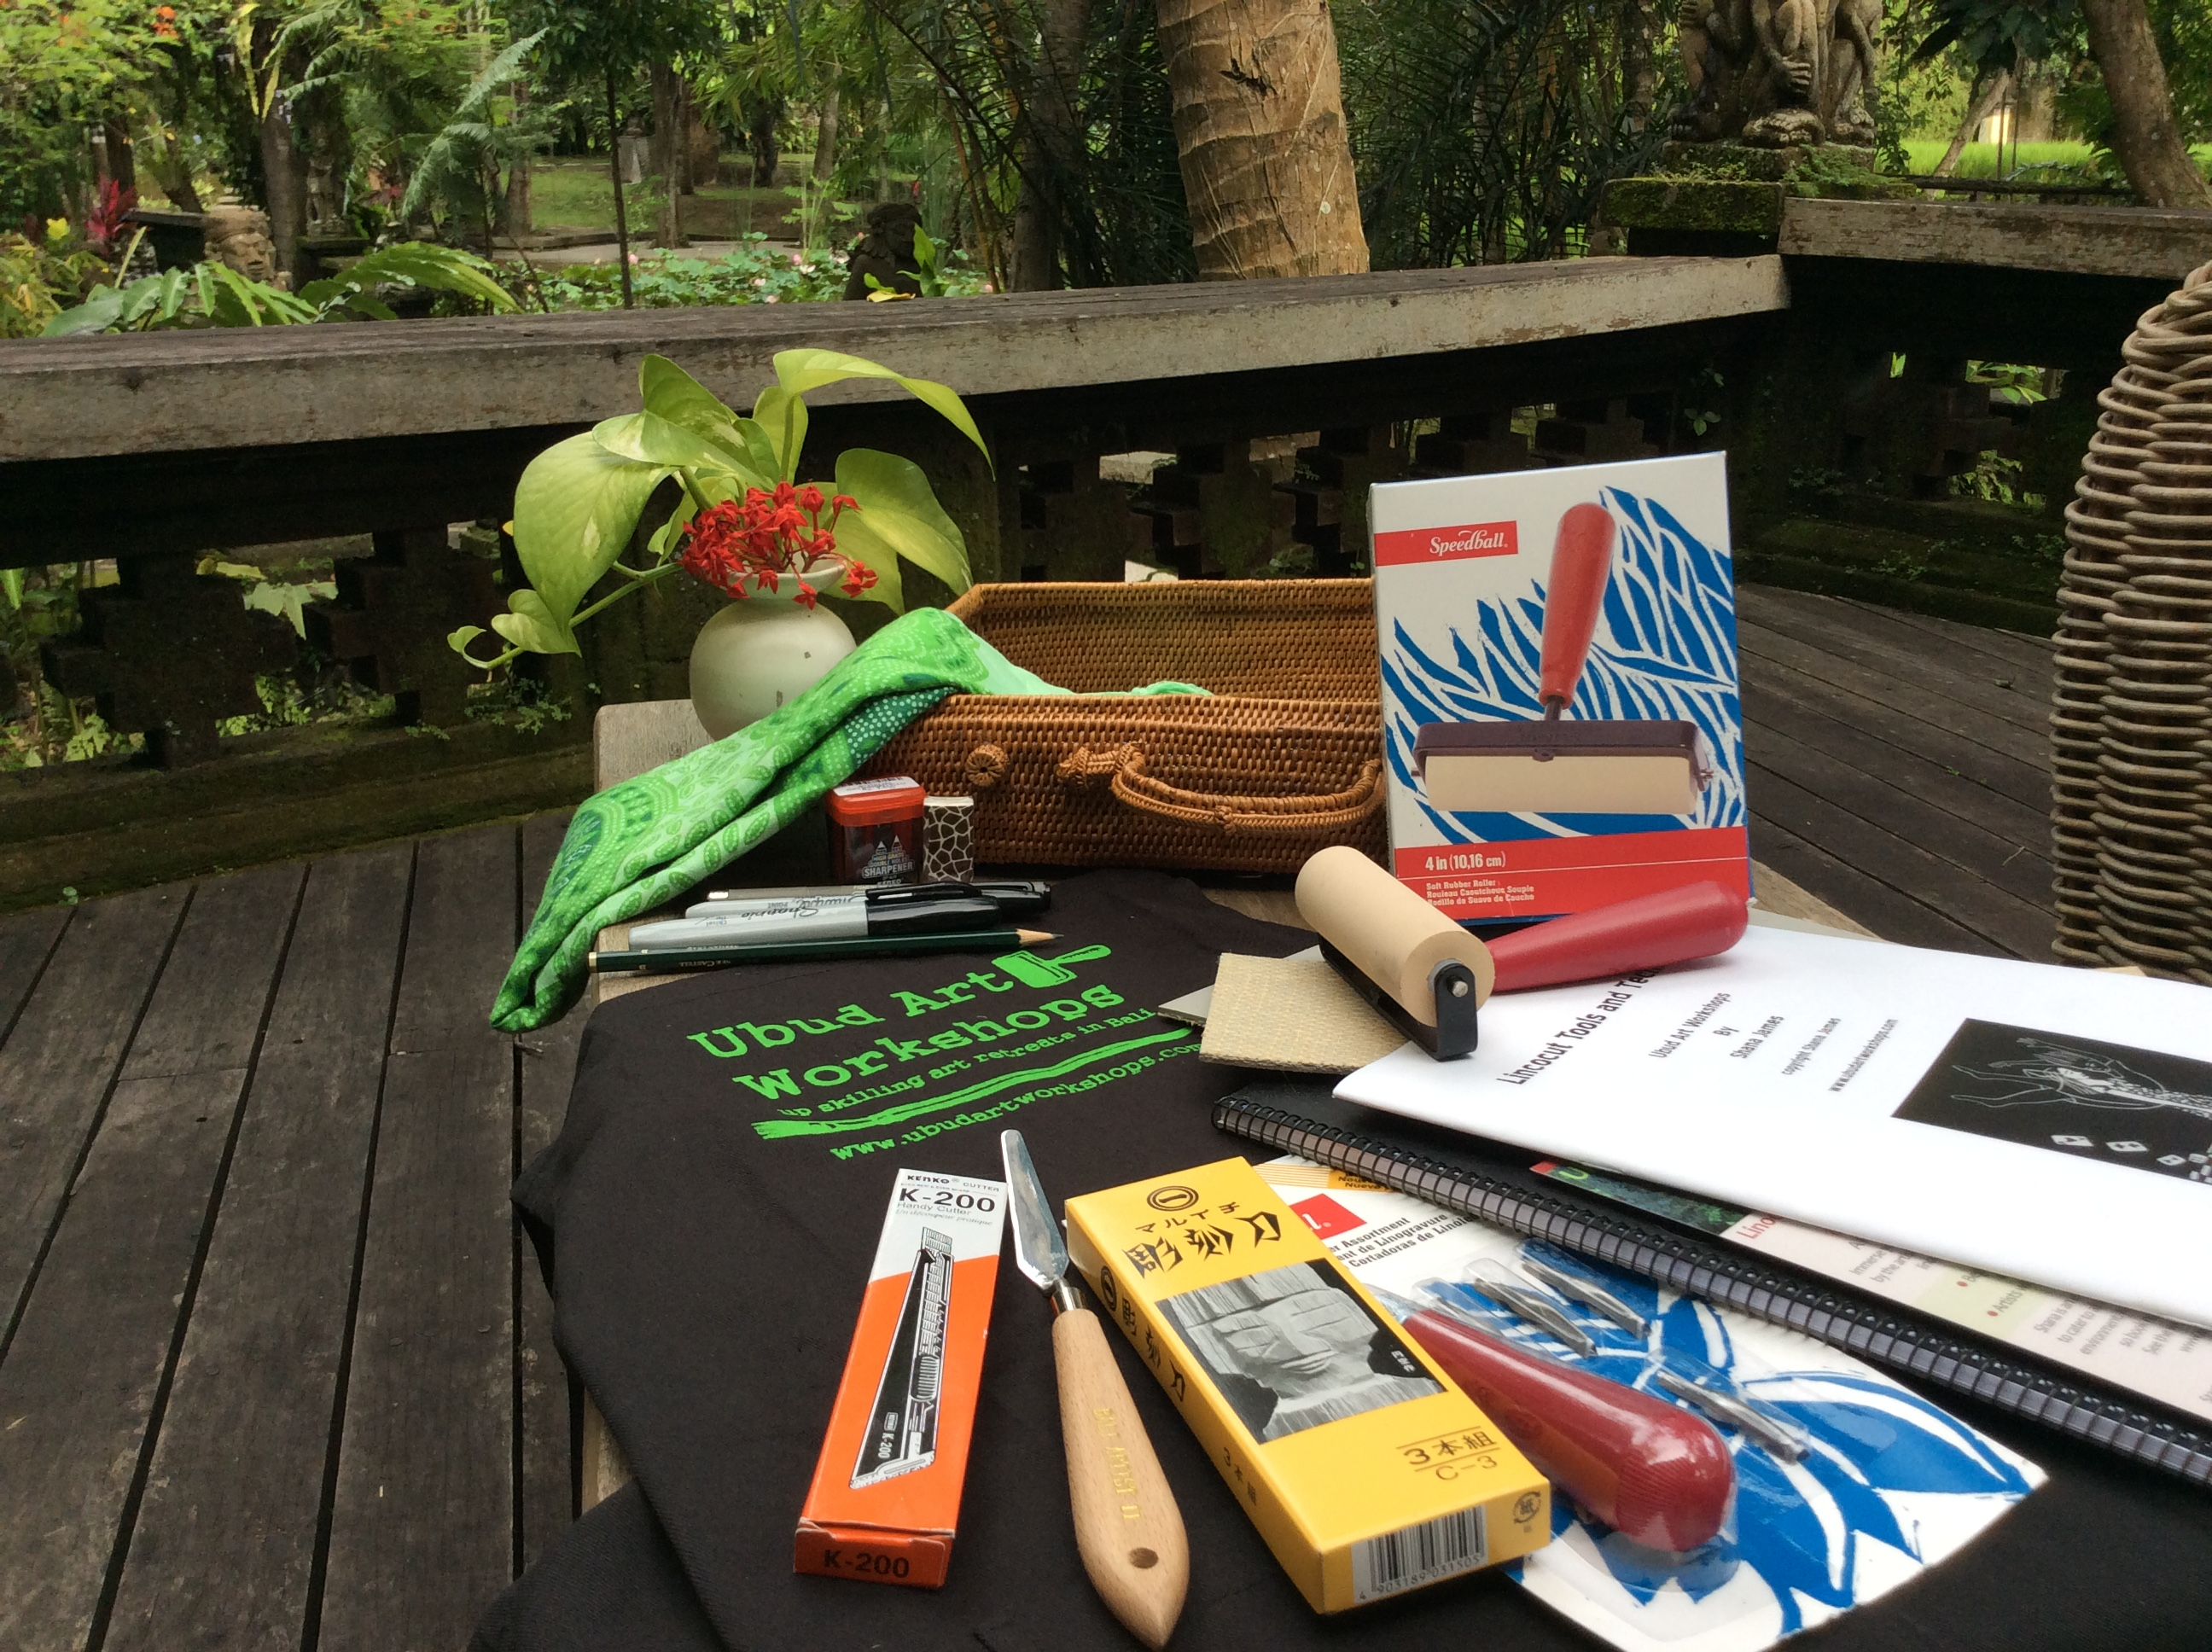 Every participant receives this beautiful materials kit to take home as part of the workshop.